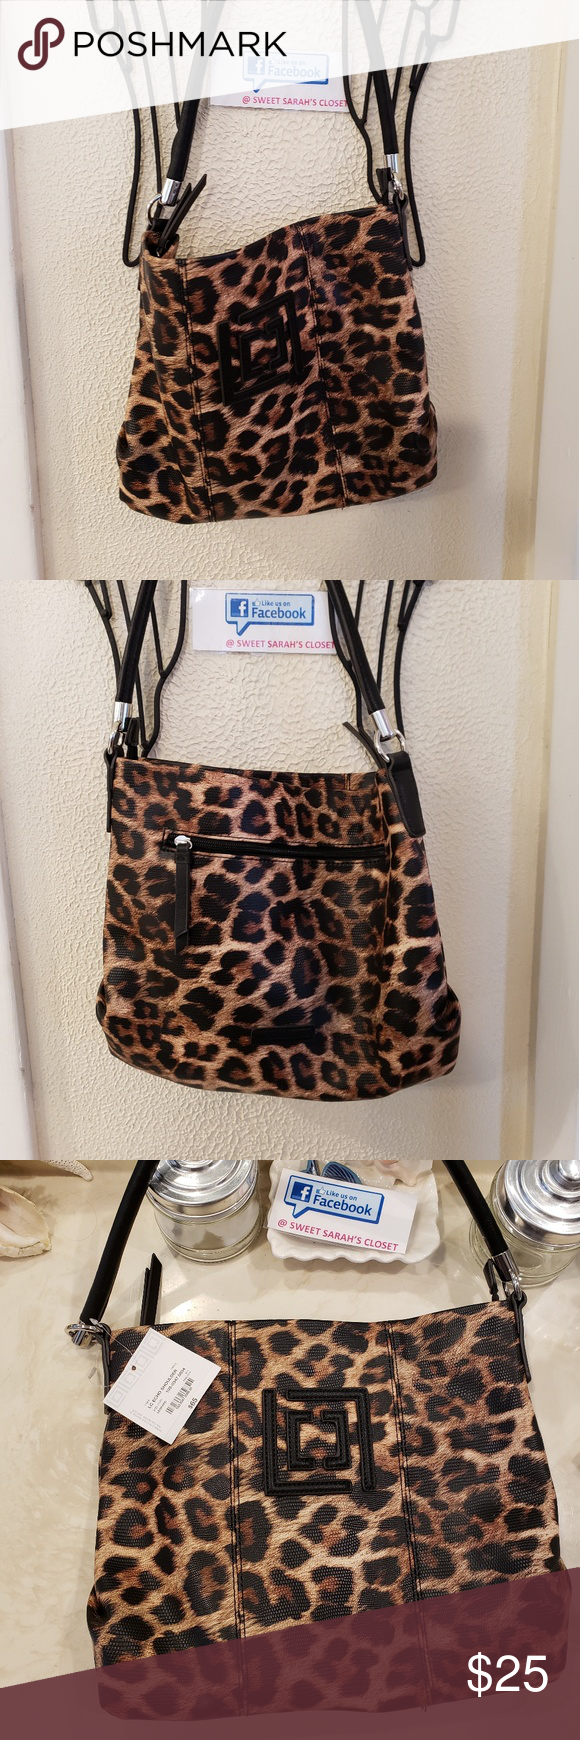 Sale Nwt Leopard Print Liz Clairborn Purse Leopard Purse Purse Brands Purses Create an account or log into facebook. pinterest